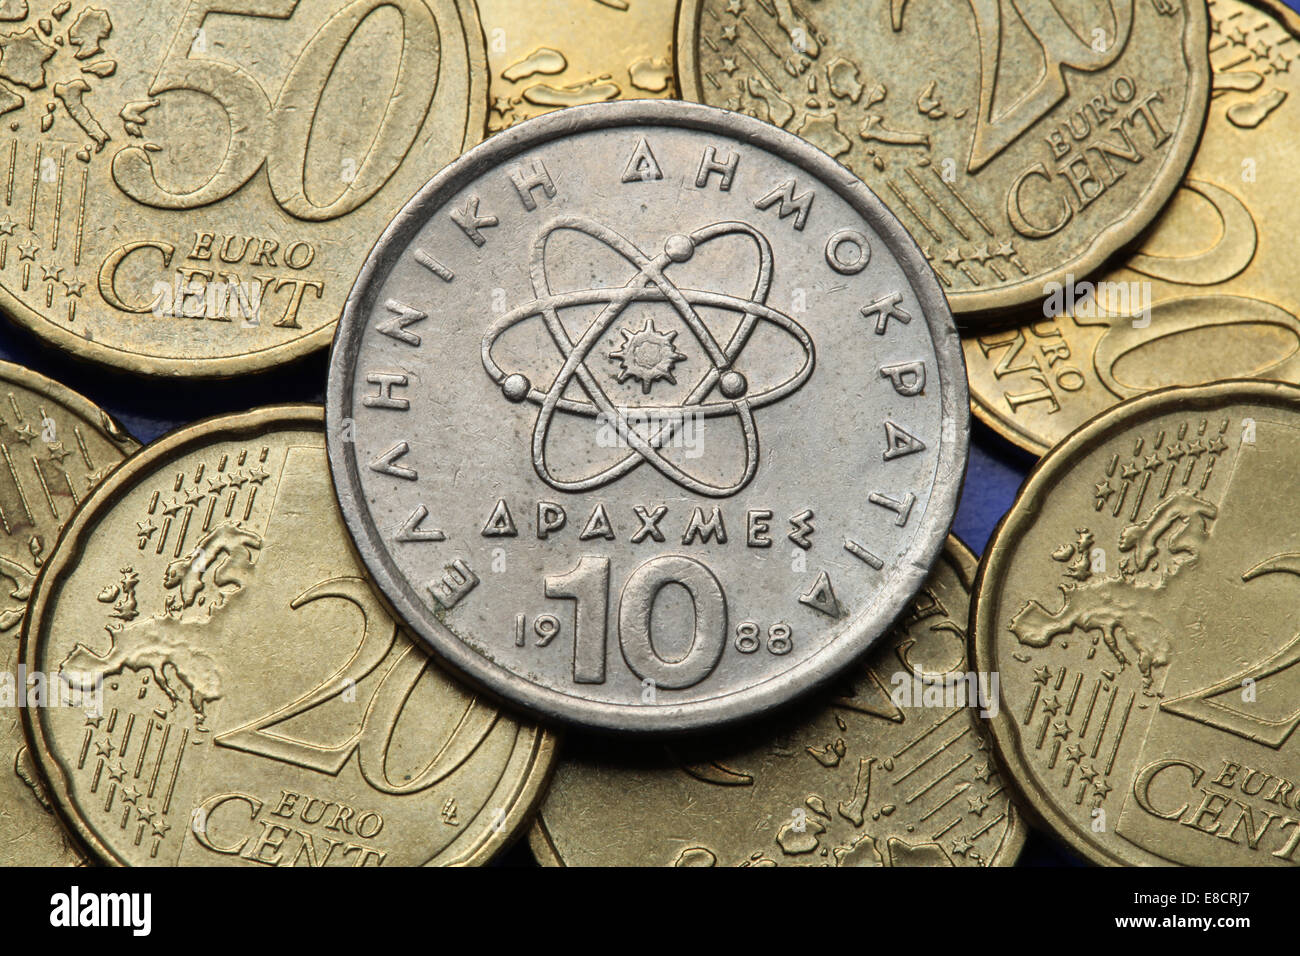 Coins of Greece. Atom, electron and neutron depicted in the old Greek 10 drachma coin. - Stock Image